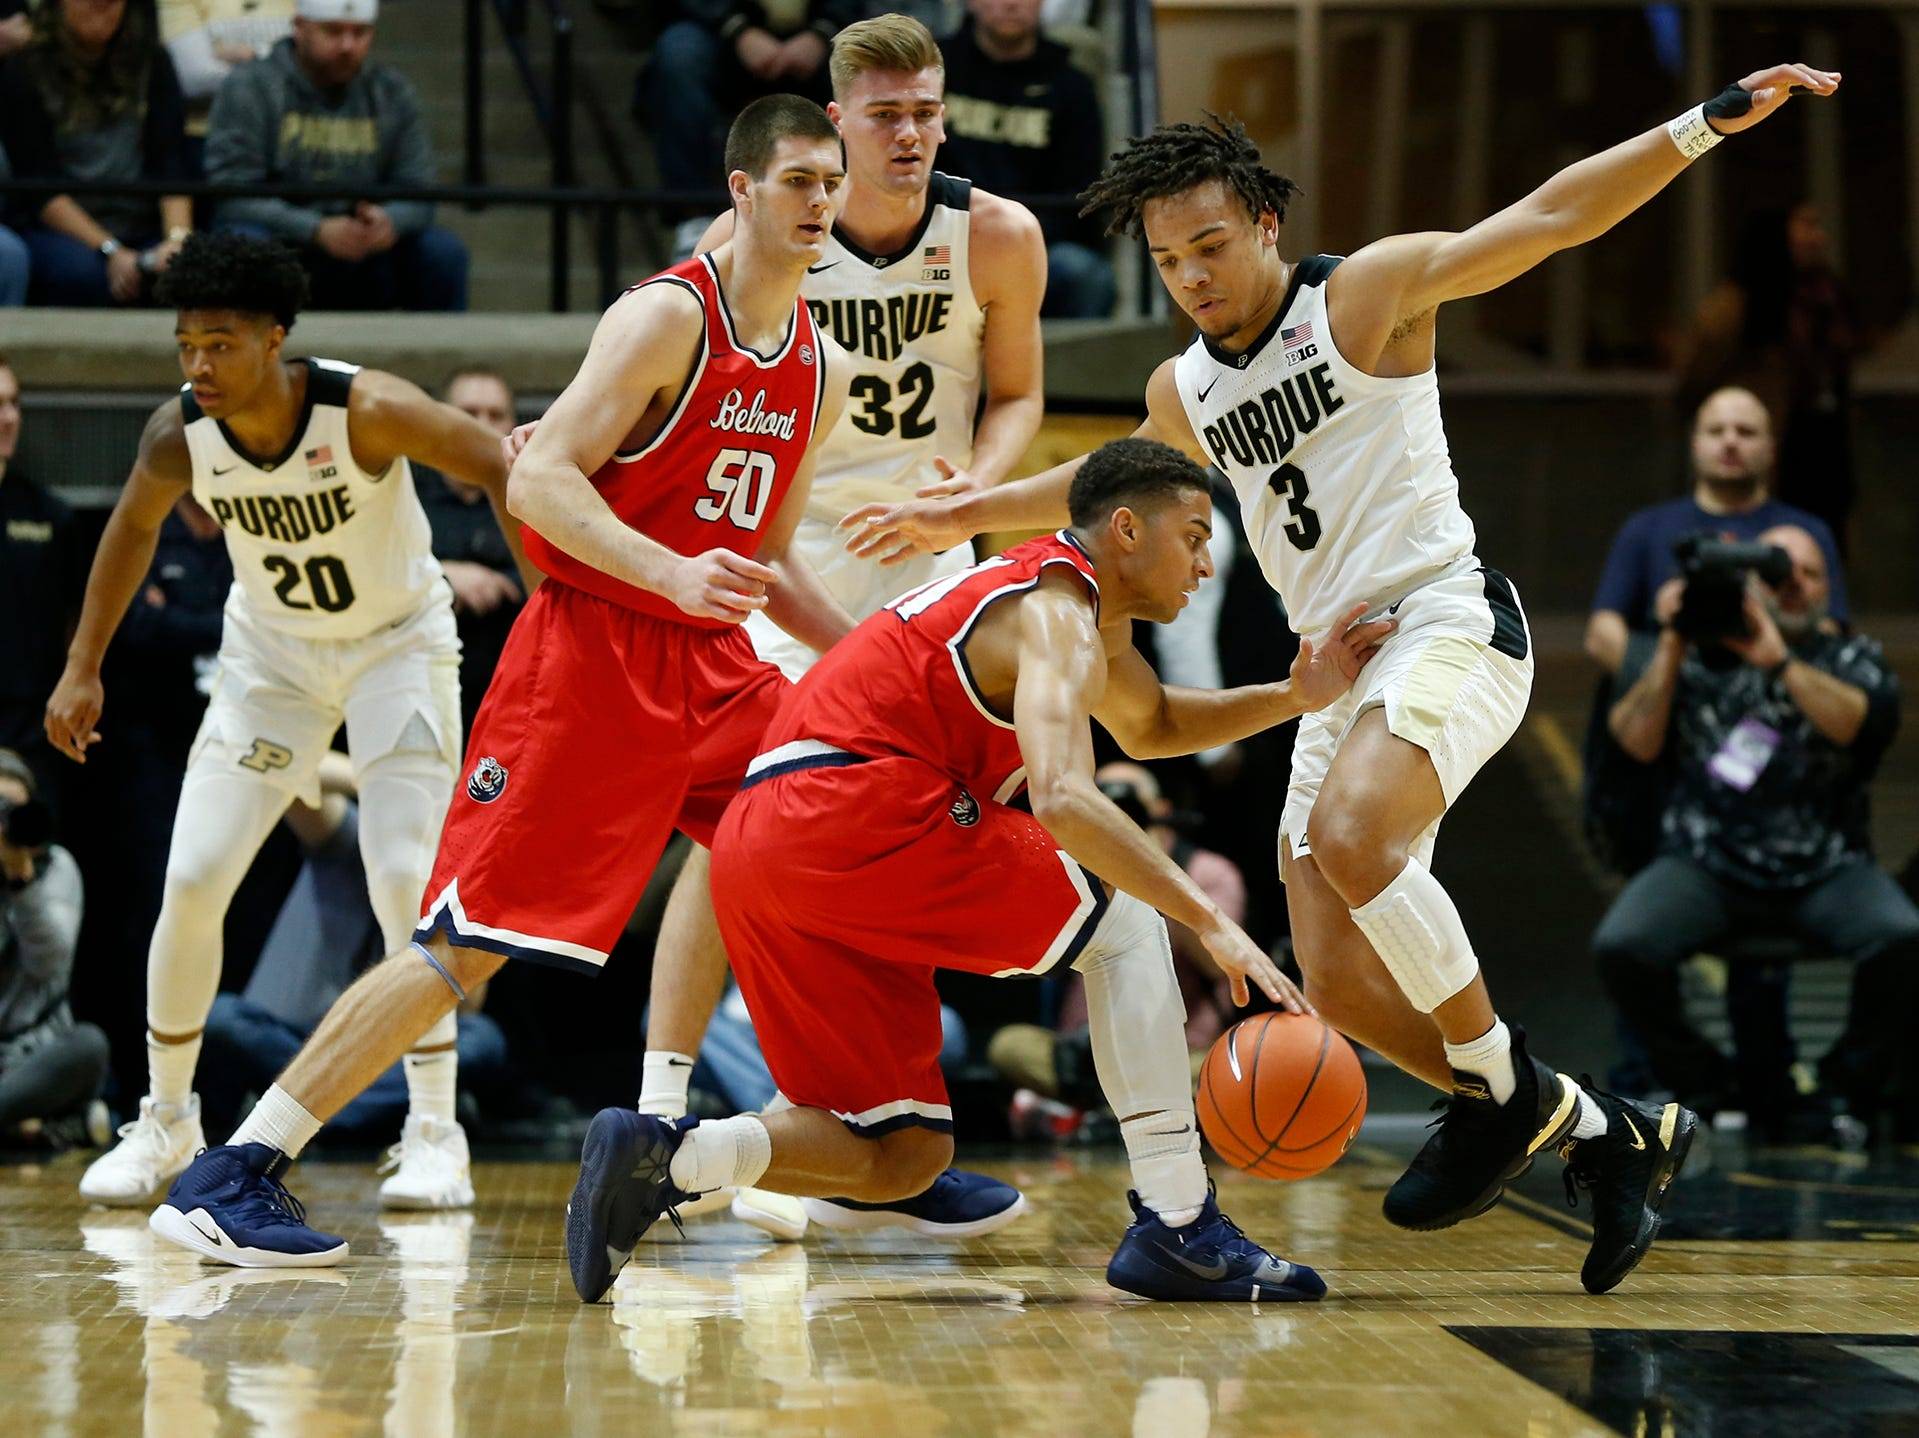 Carsen Edwards of Purdue steps up to cut off the lane for Kevin McClain of Belmont Saturday, December 29, 2018, at Mackey Arena. Purdue defeated Belmont 73-62.